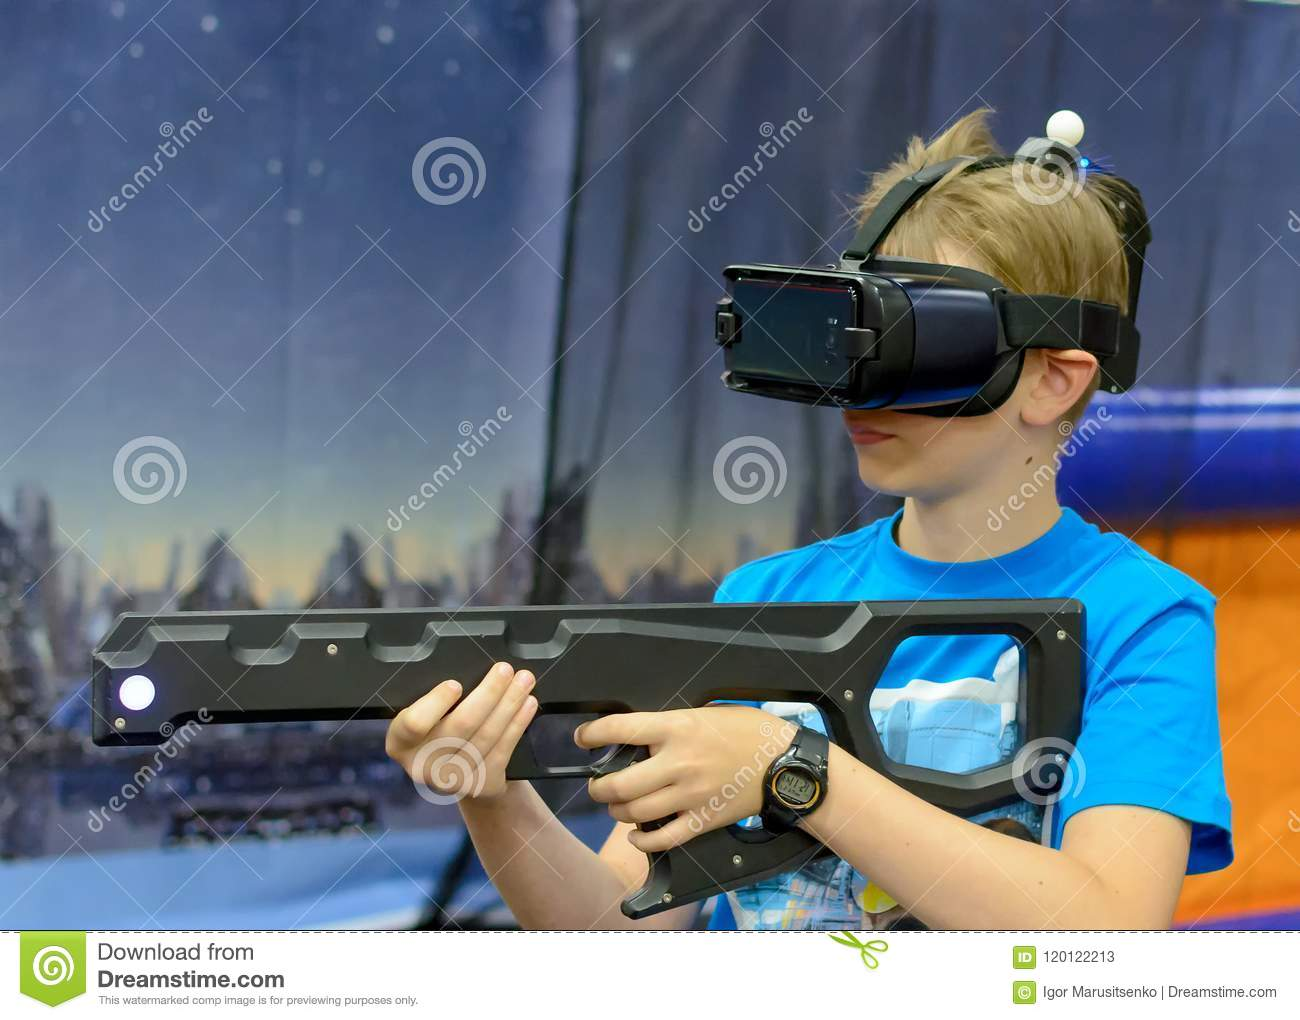 Boy In Virtual Reality Glasses With Gun Stock Image - Image of gamer